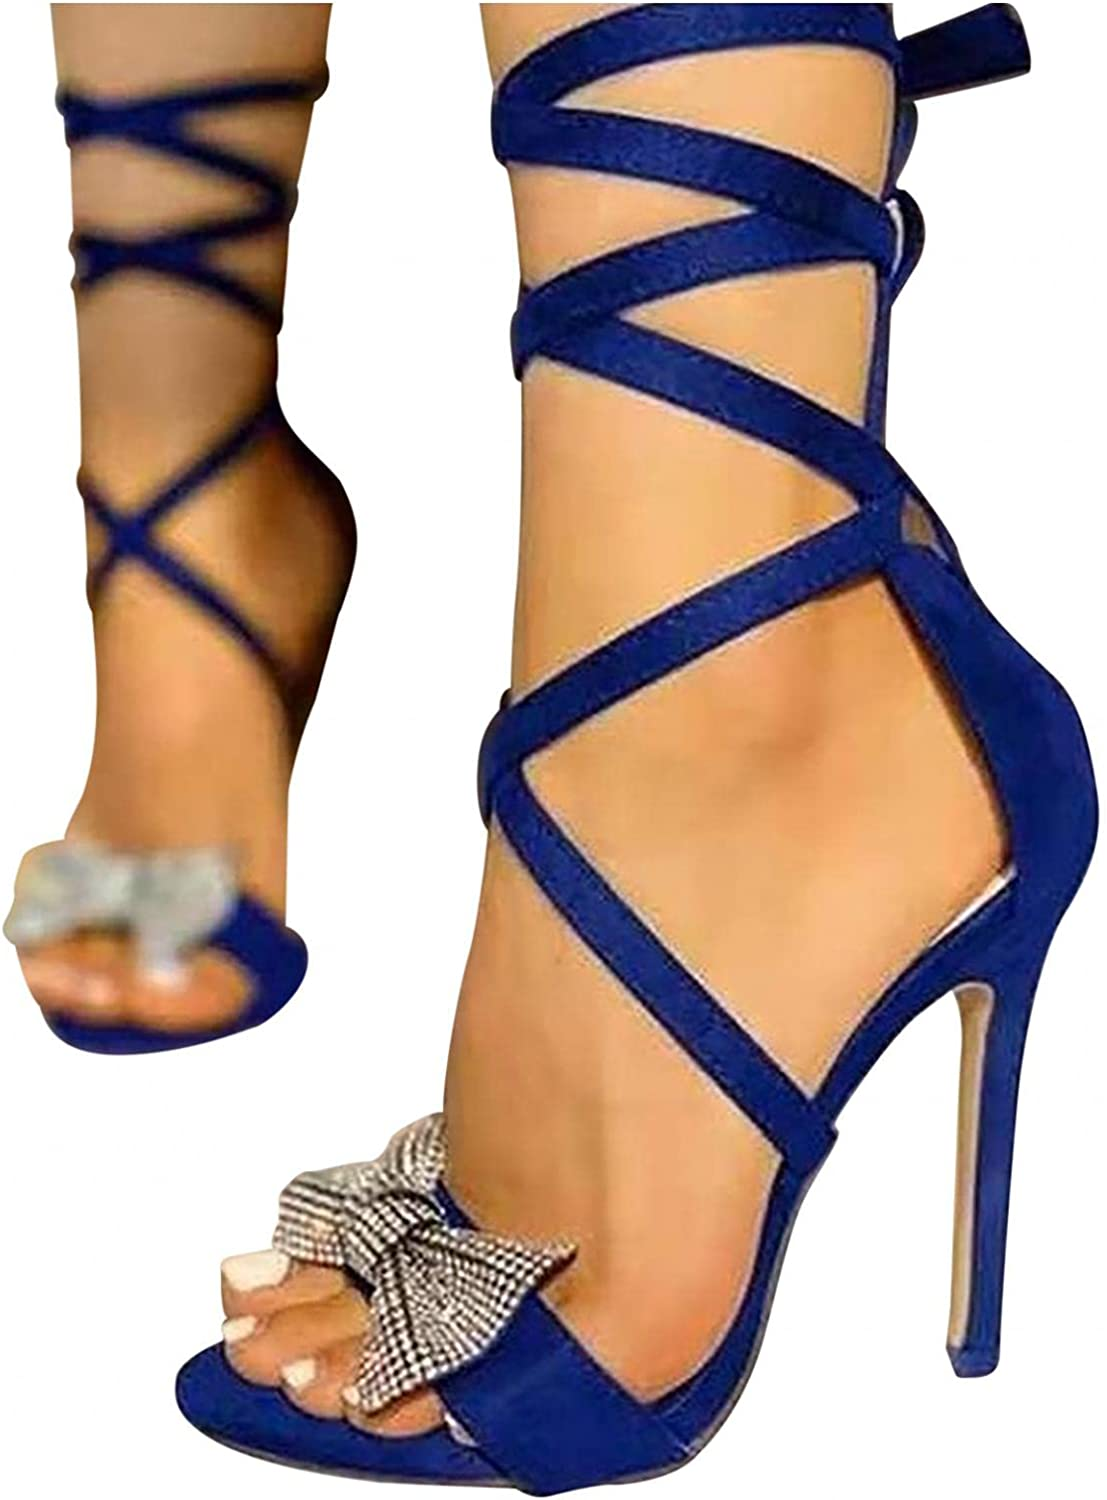 Xudanell 2021new shipping free Sandals for Women Rounded Toe Hee Lace High Up Open Max 71% OFF